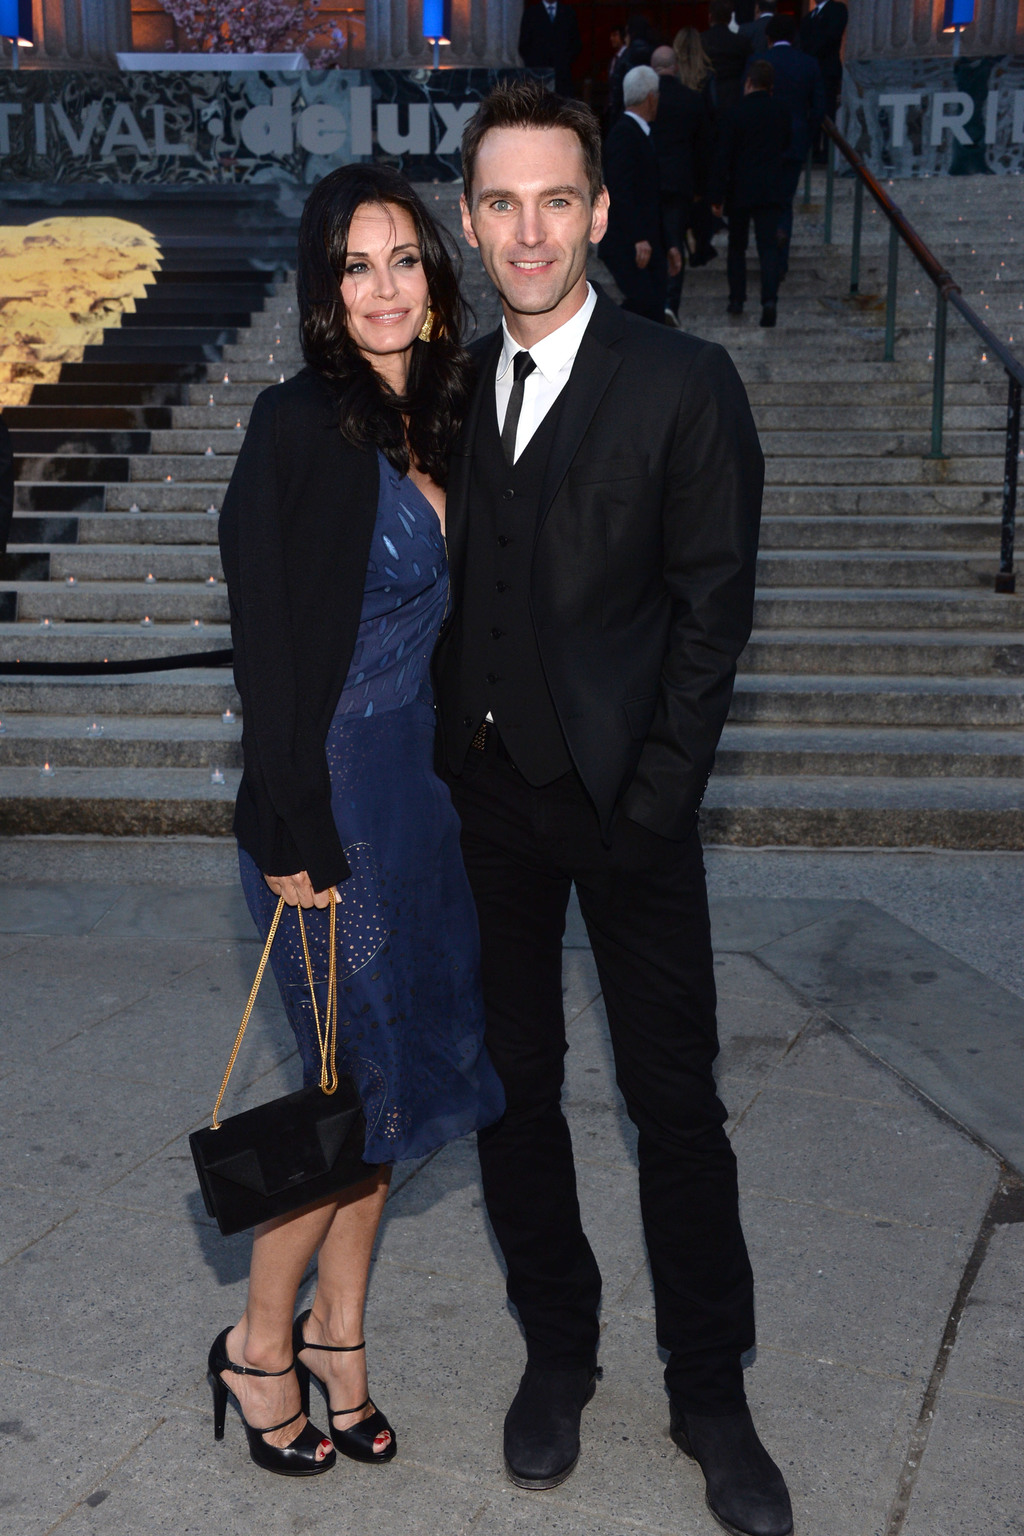 Johnny McDaid és Courteney Cox. Fotó: Sipa USA